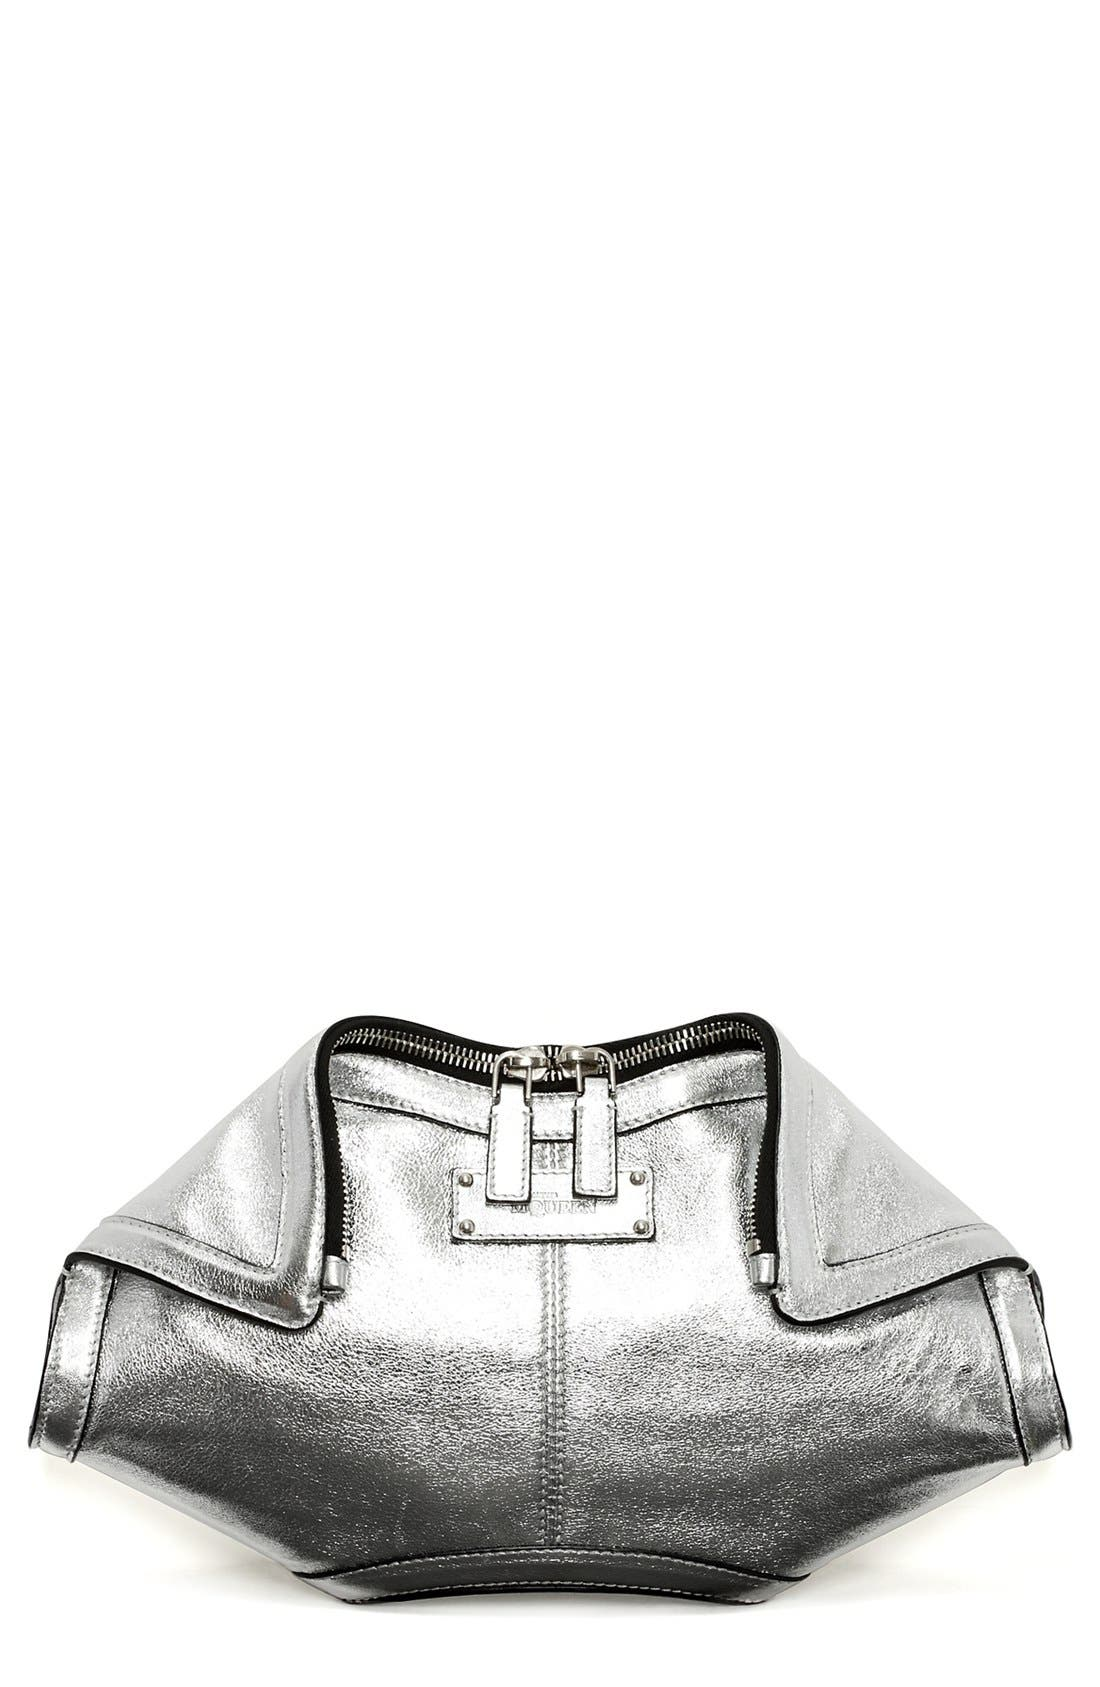 Alternate Image 1 Selected - Alexander McQueen 'De Manta - Small' Metallic Clutch